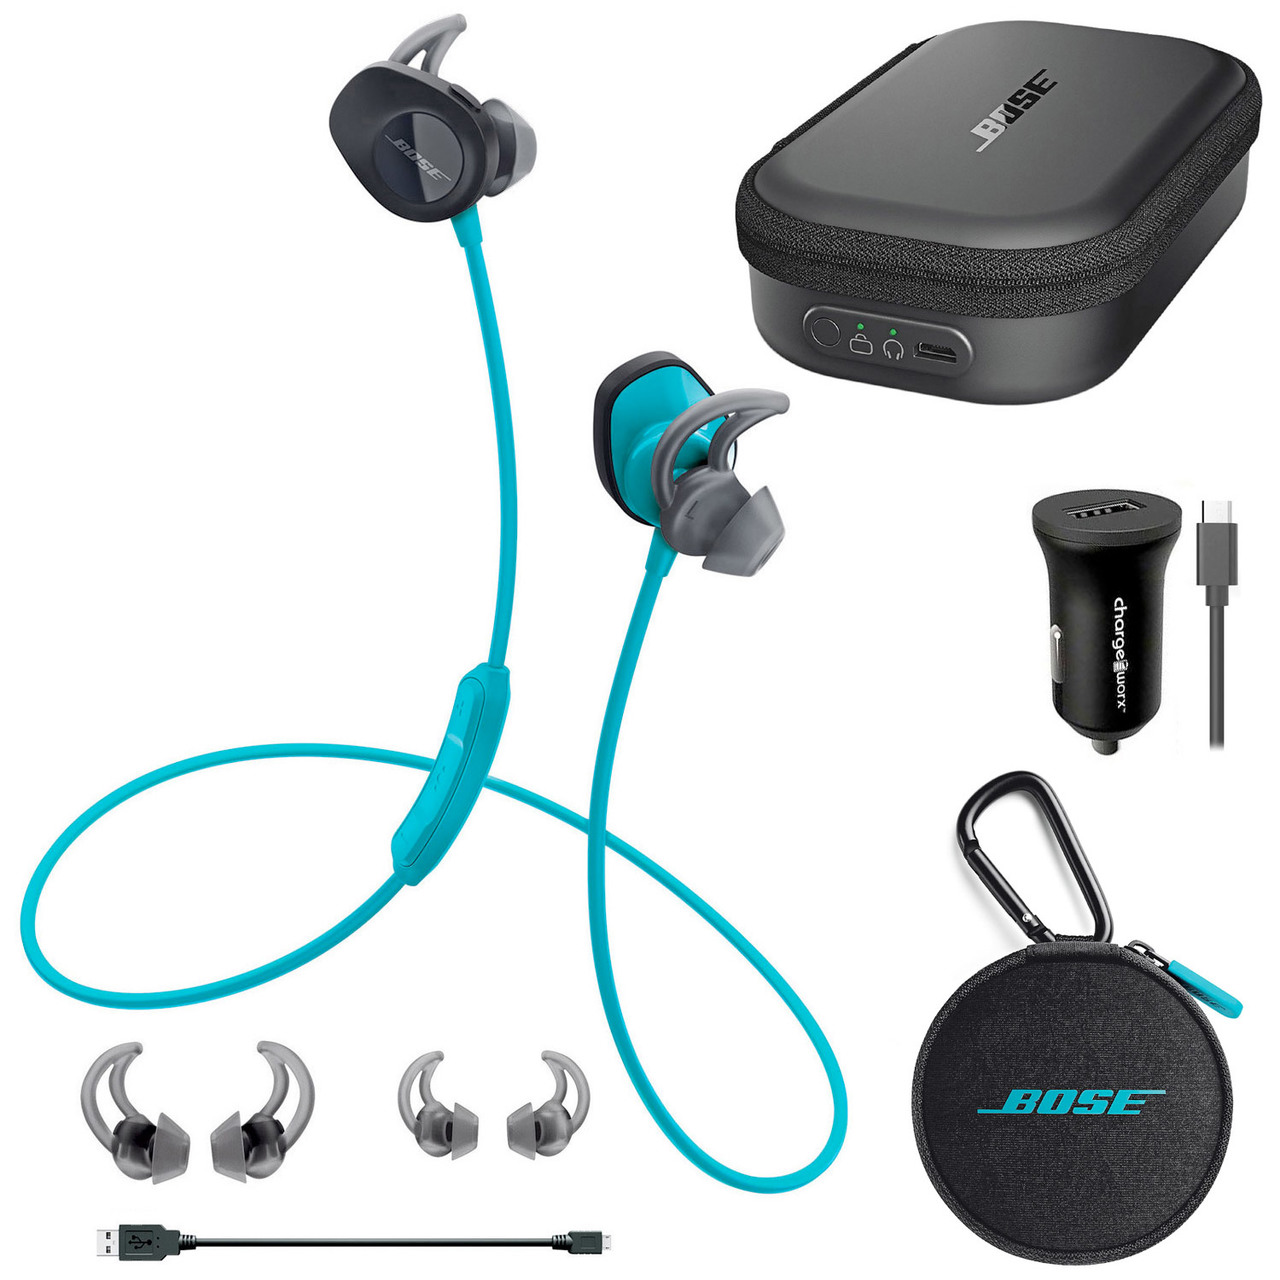 47025a5e9d9 Bose | SoundSport Wireless In-Ear Headphone Bundle w/ Charging Case ...